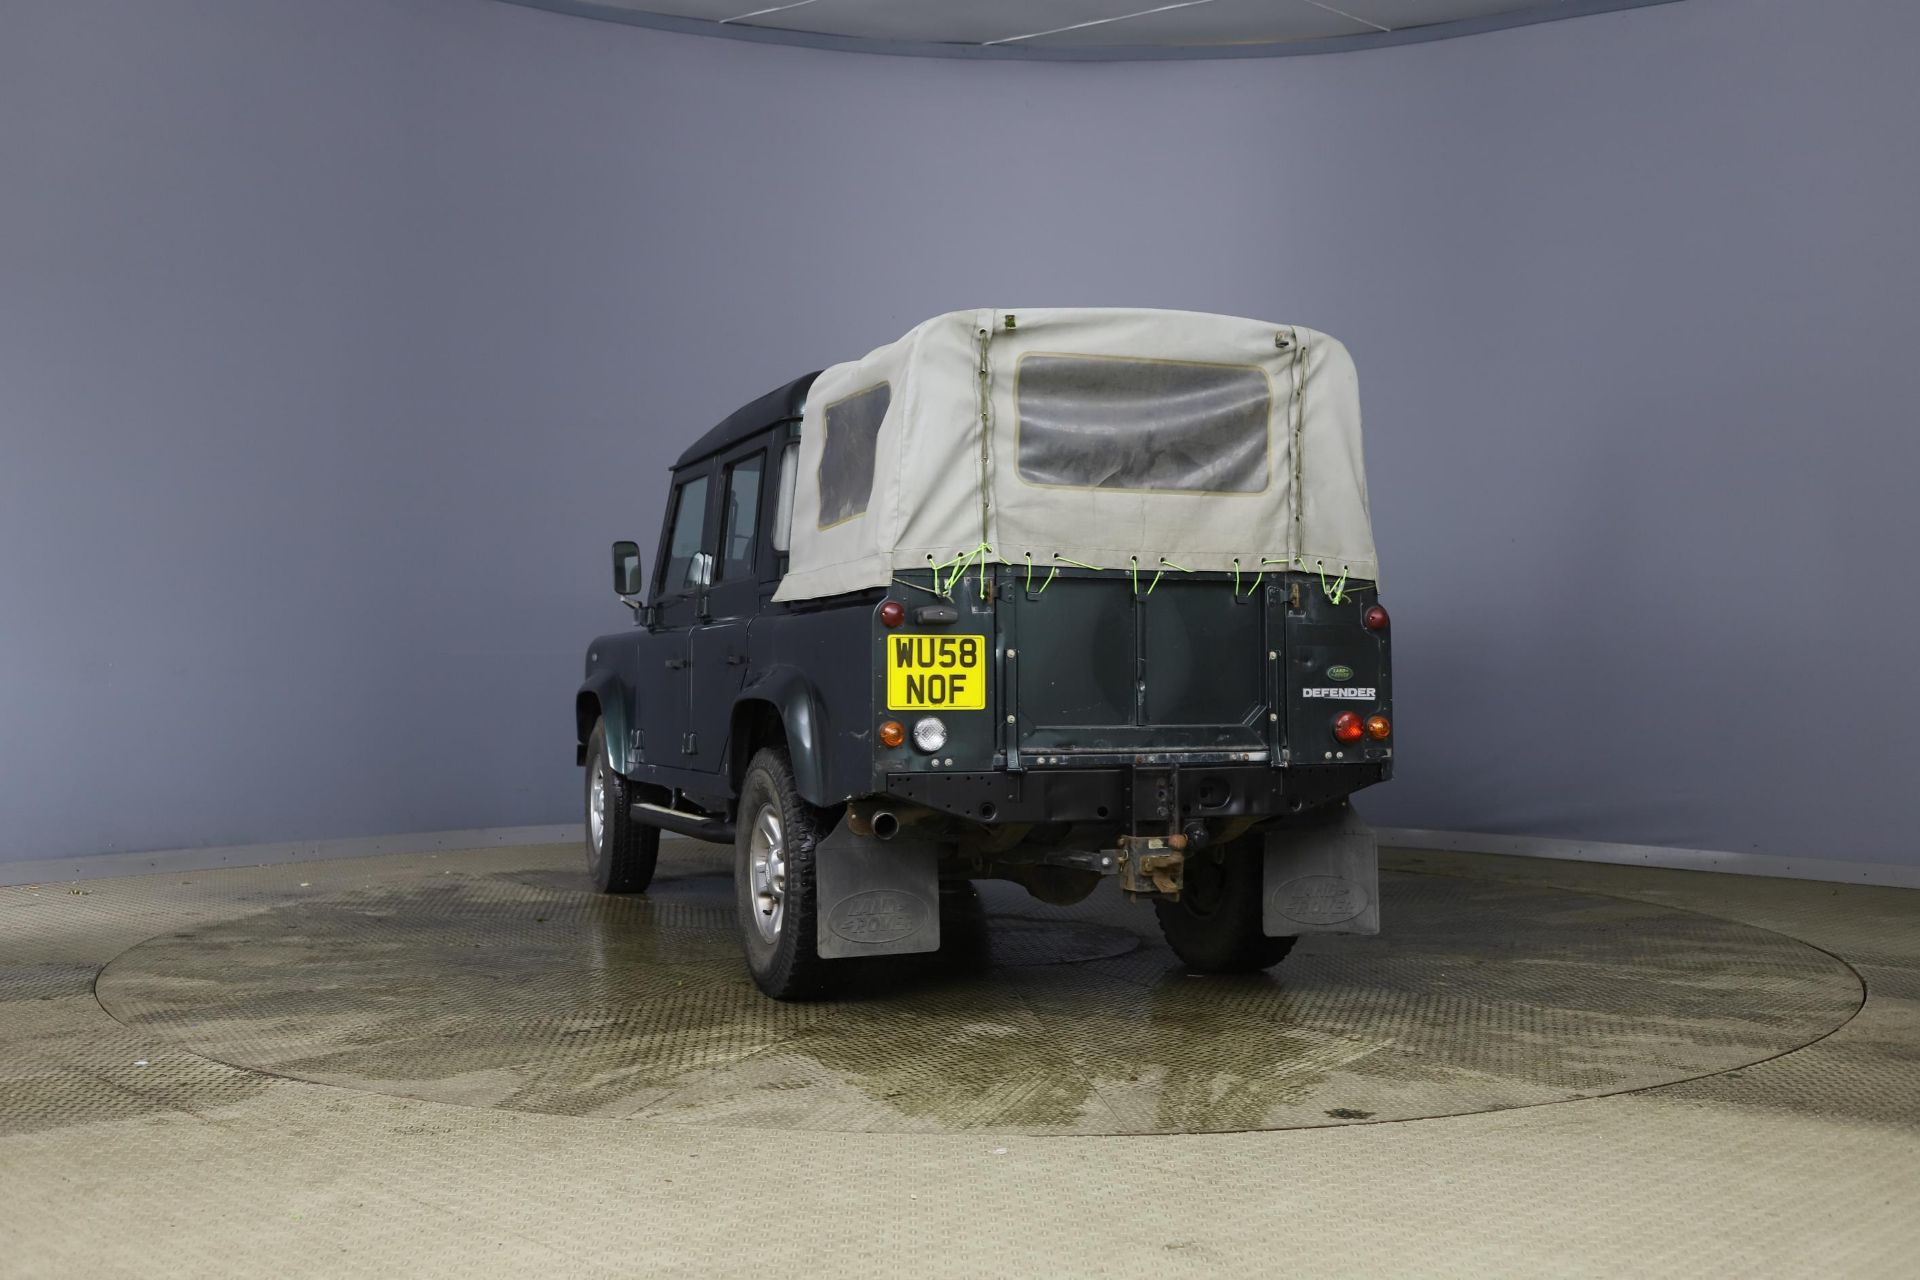 2008/58 REG LAND ROVER DEFENDER 110 XS DC LWB 2.4 DIESEL GREEN LIGHT 4X4, SHOWING 2 FORMER KEEPERS - Image 4 of 12